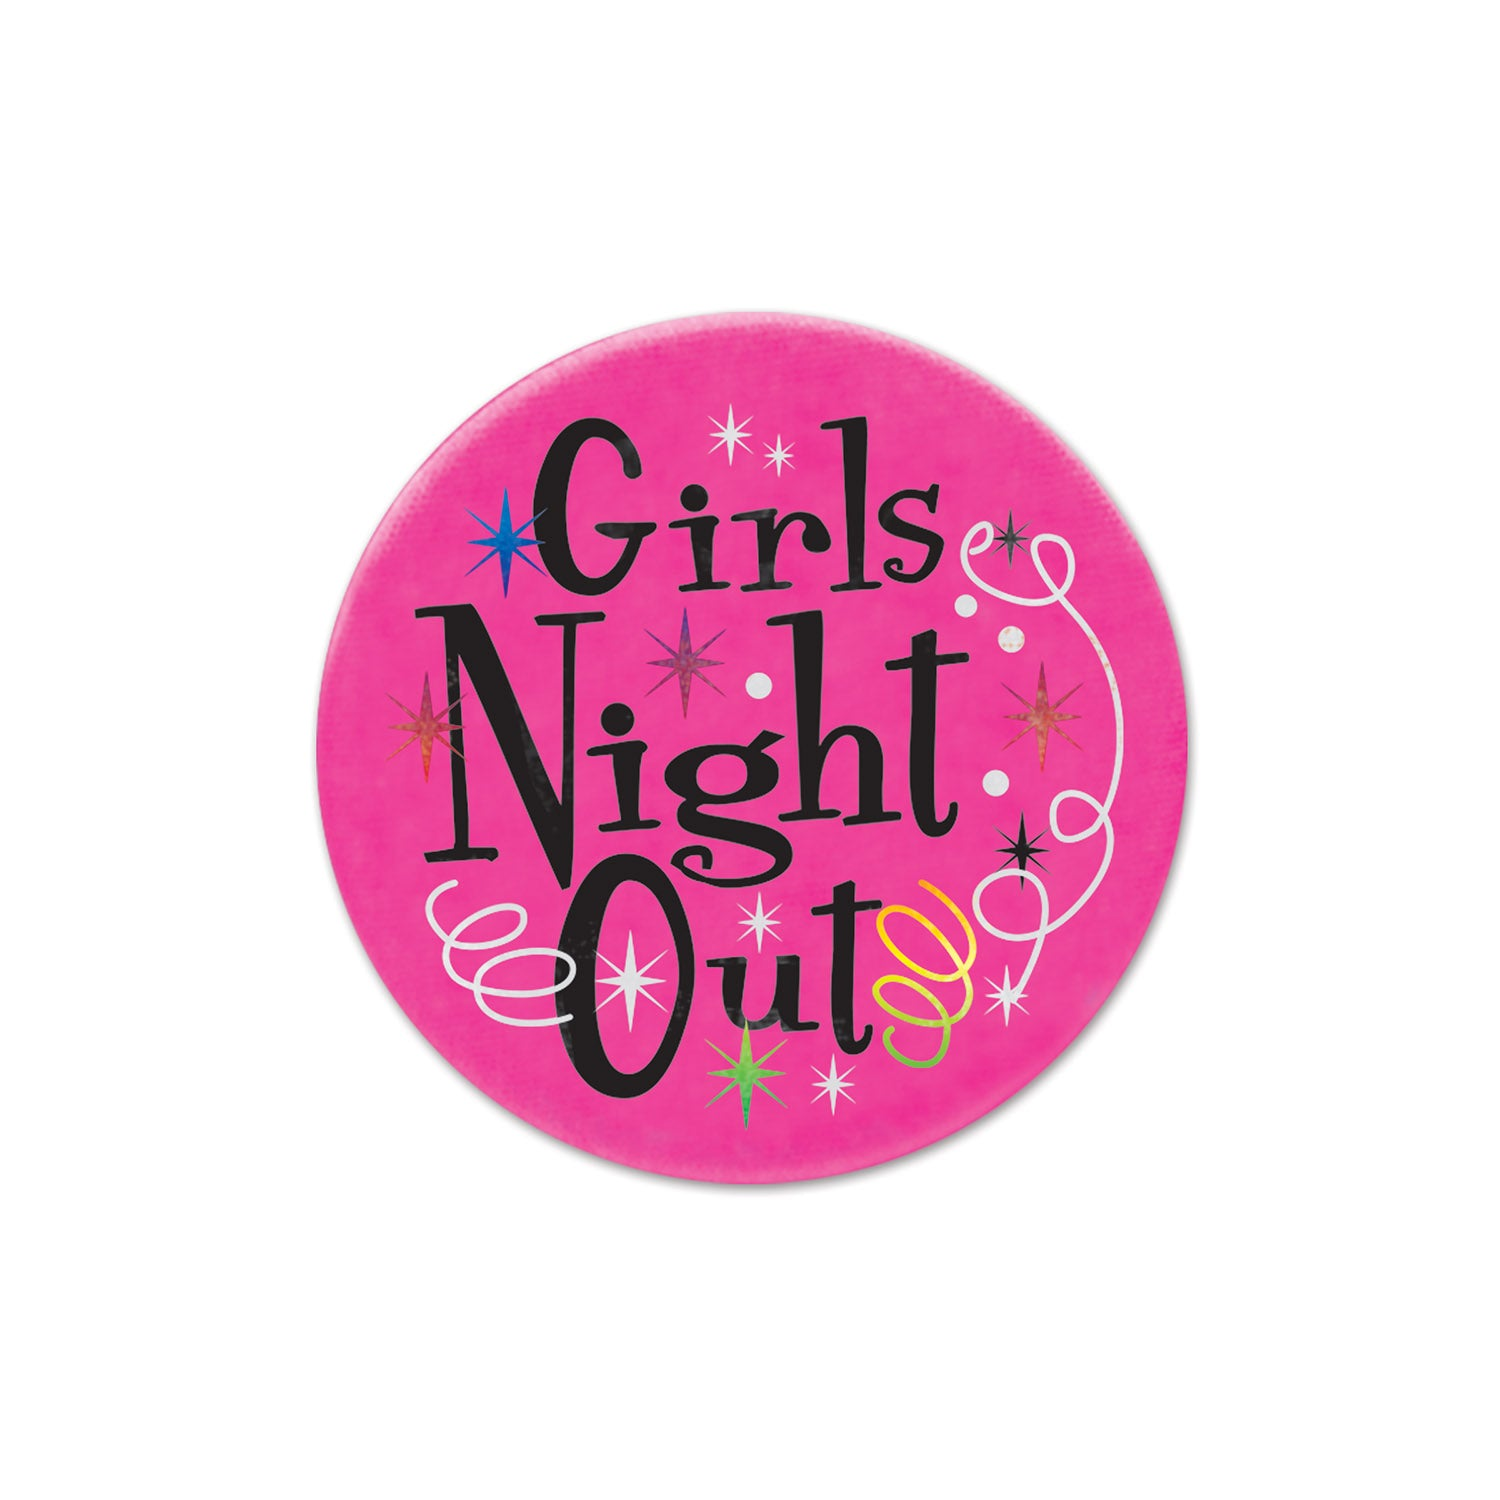 Girls' Night Out Satin Button by Beistle - Bachelorette Theme Decorations